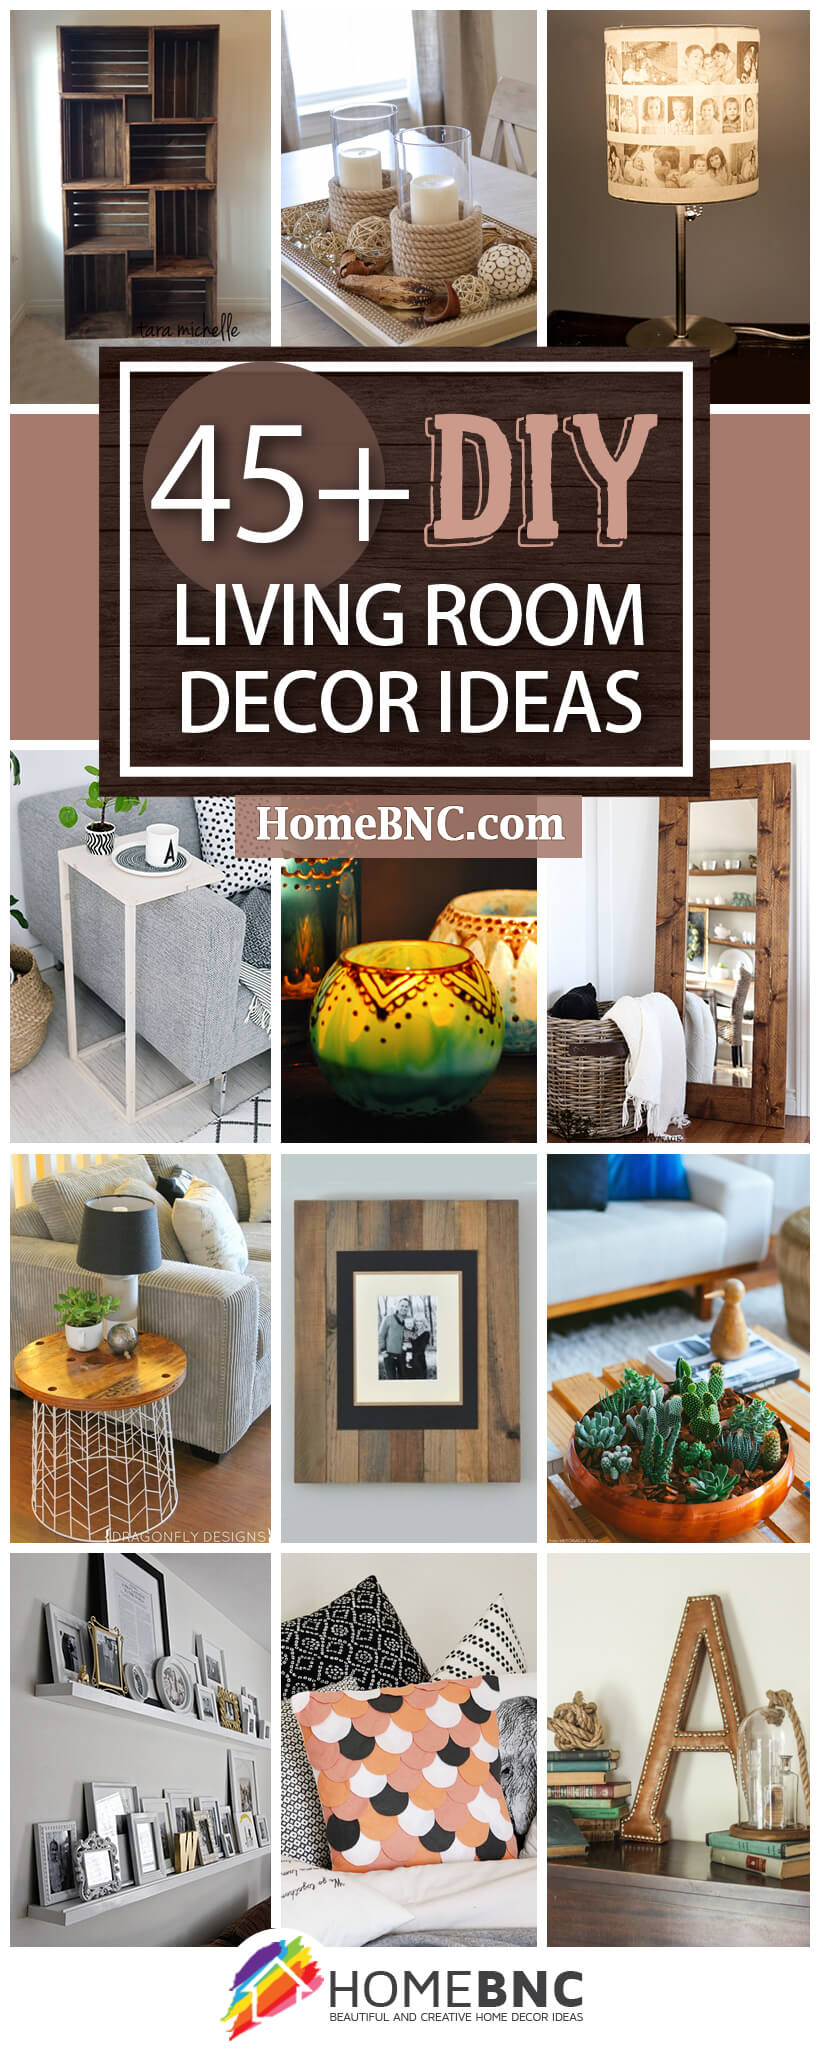 Best 45 Best Diy Living Room Decorating Ideas And Designs For 2019 This Month